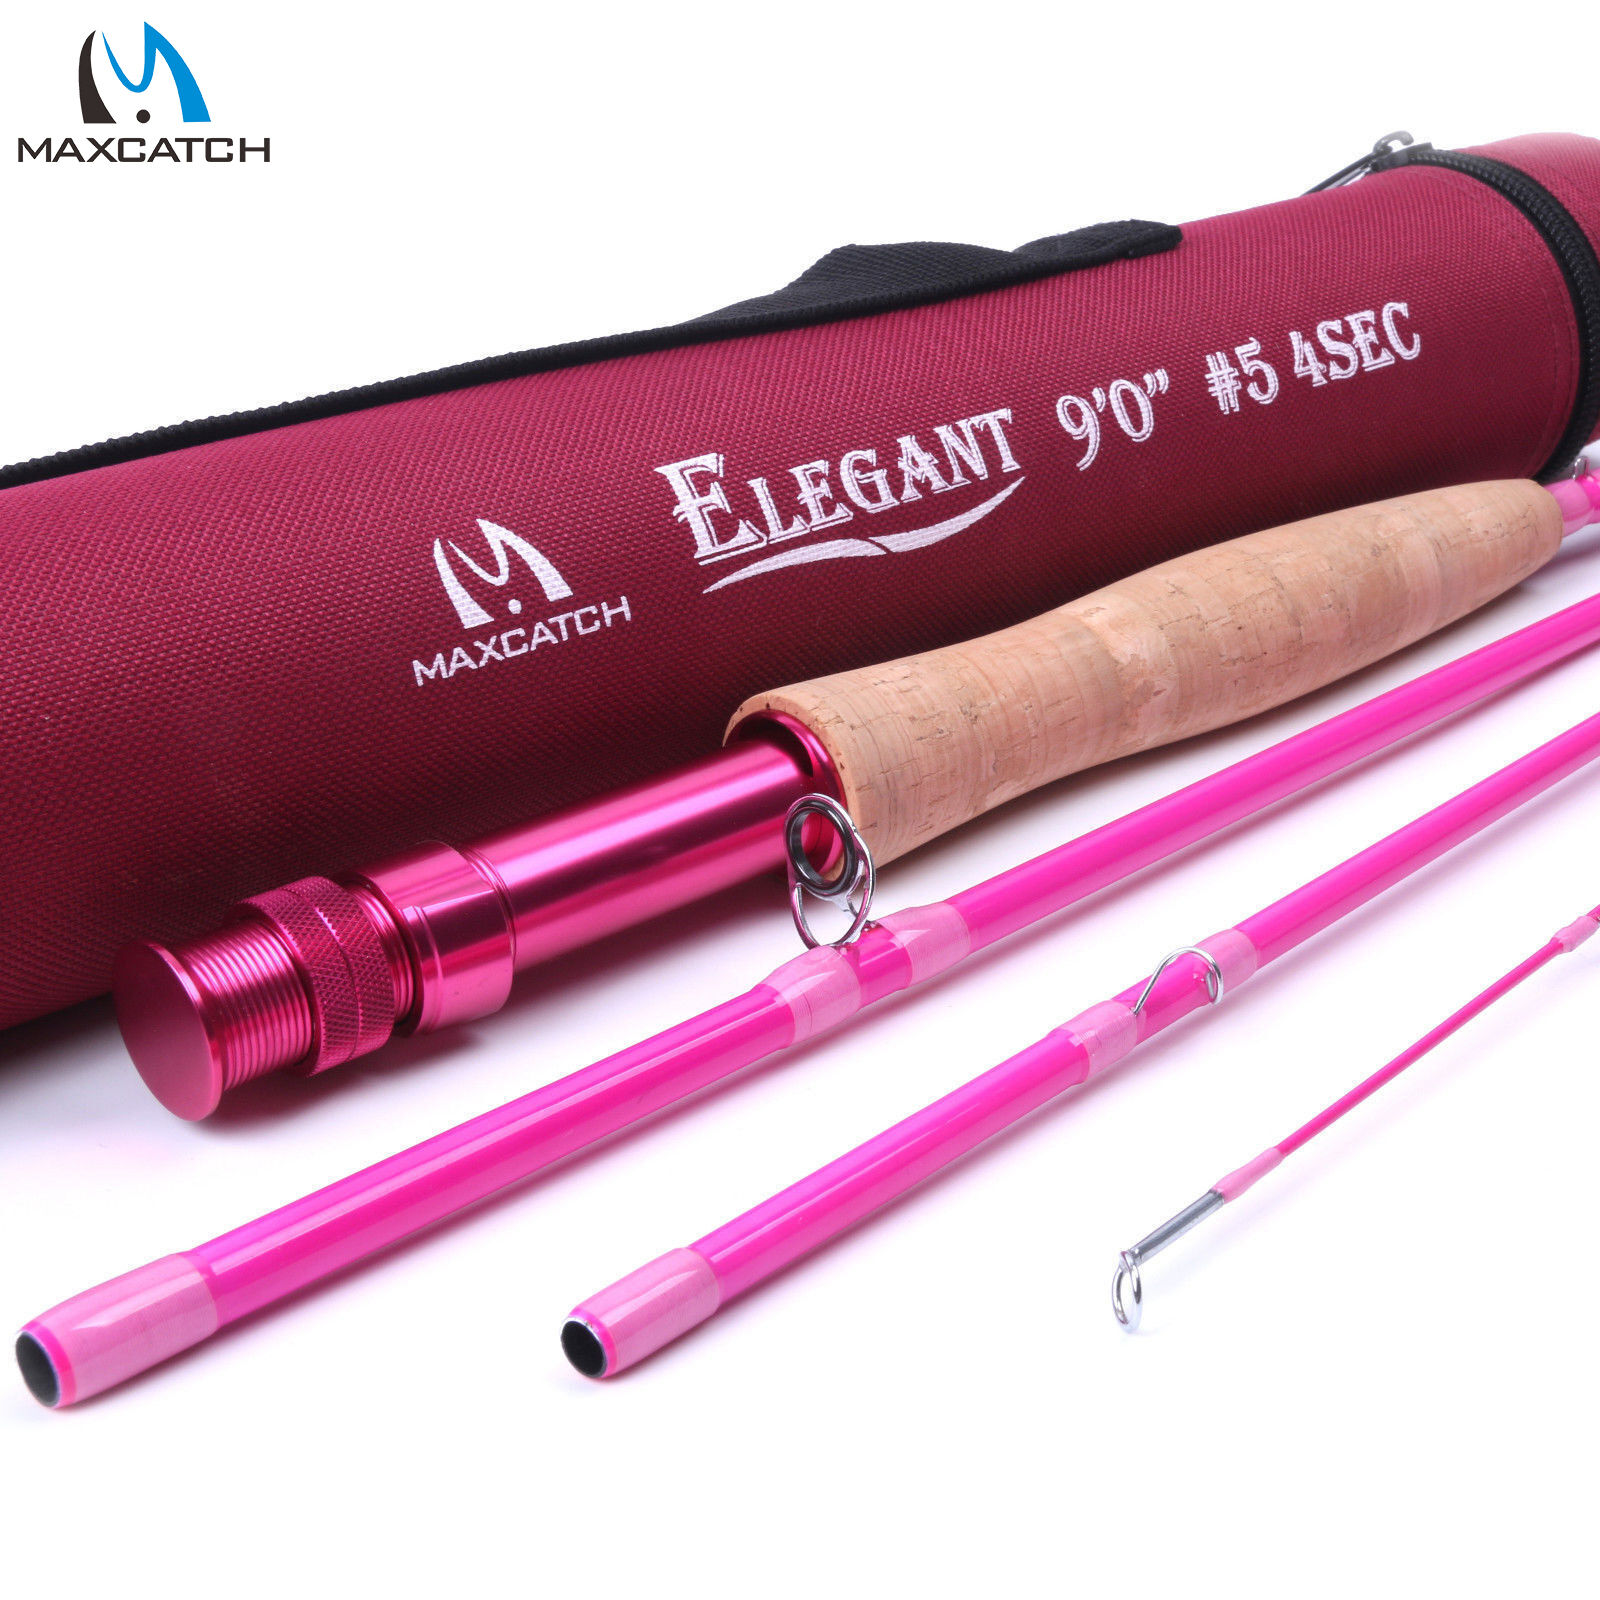 5WT Women's Pink Fly  Rod 9FT 4SEC Medium-fast Fly Fishing Rod For Lady  buy 100% authentic quality